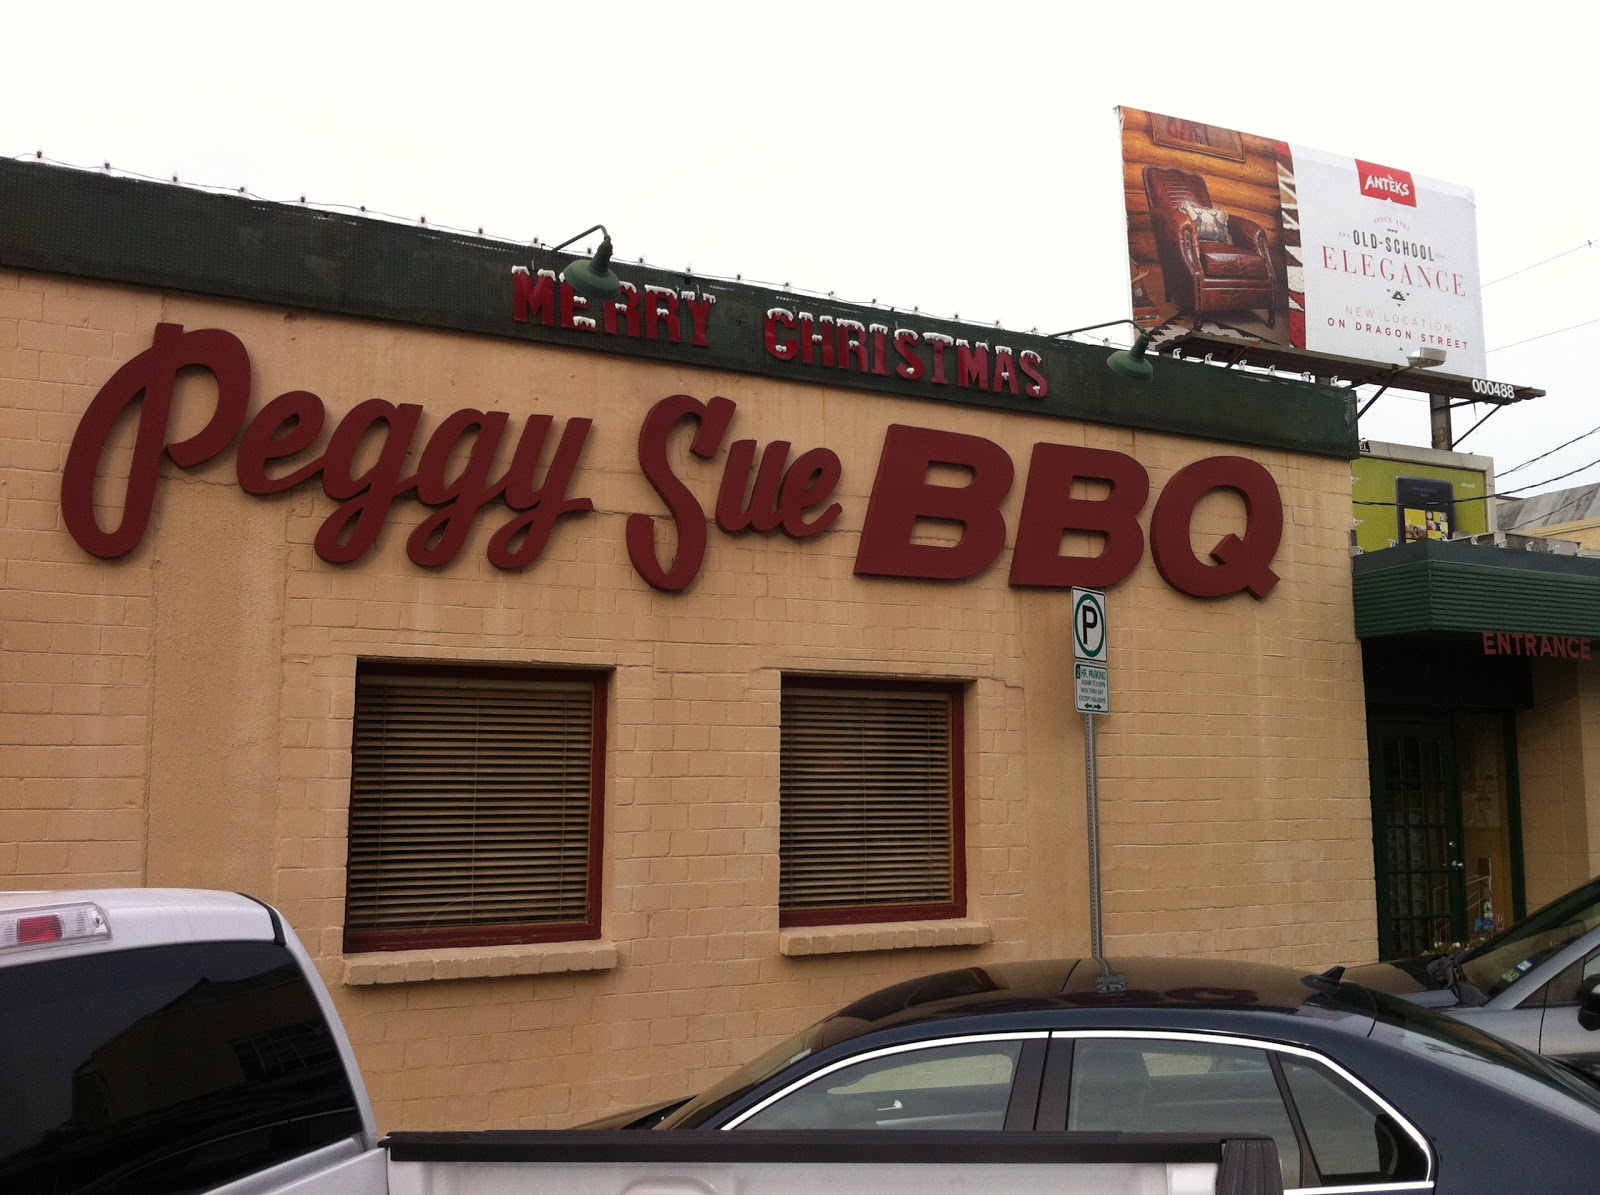 Peggy Sue BBQ Barbecue Barbeque Bar-B-Q Dallas